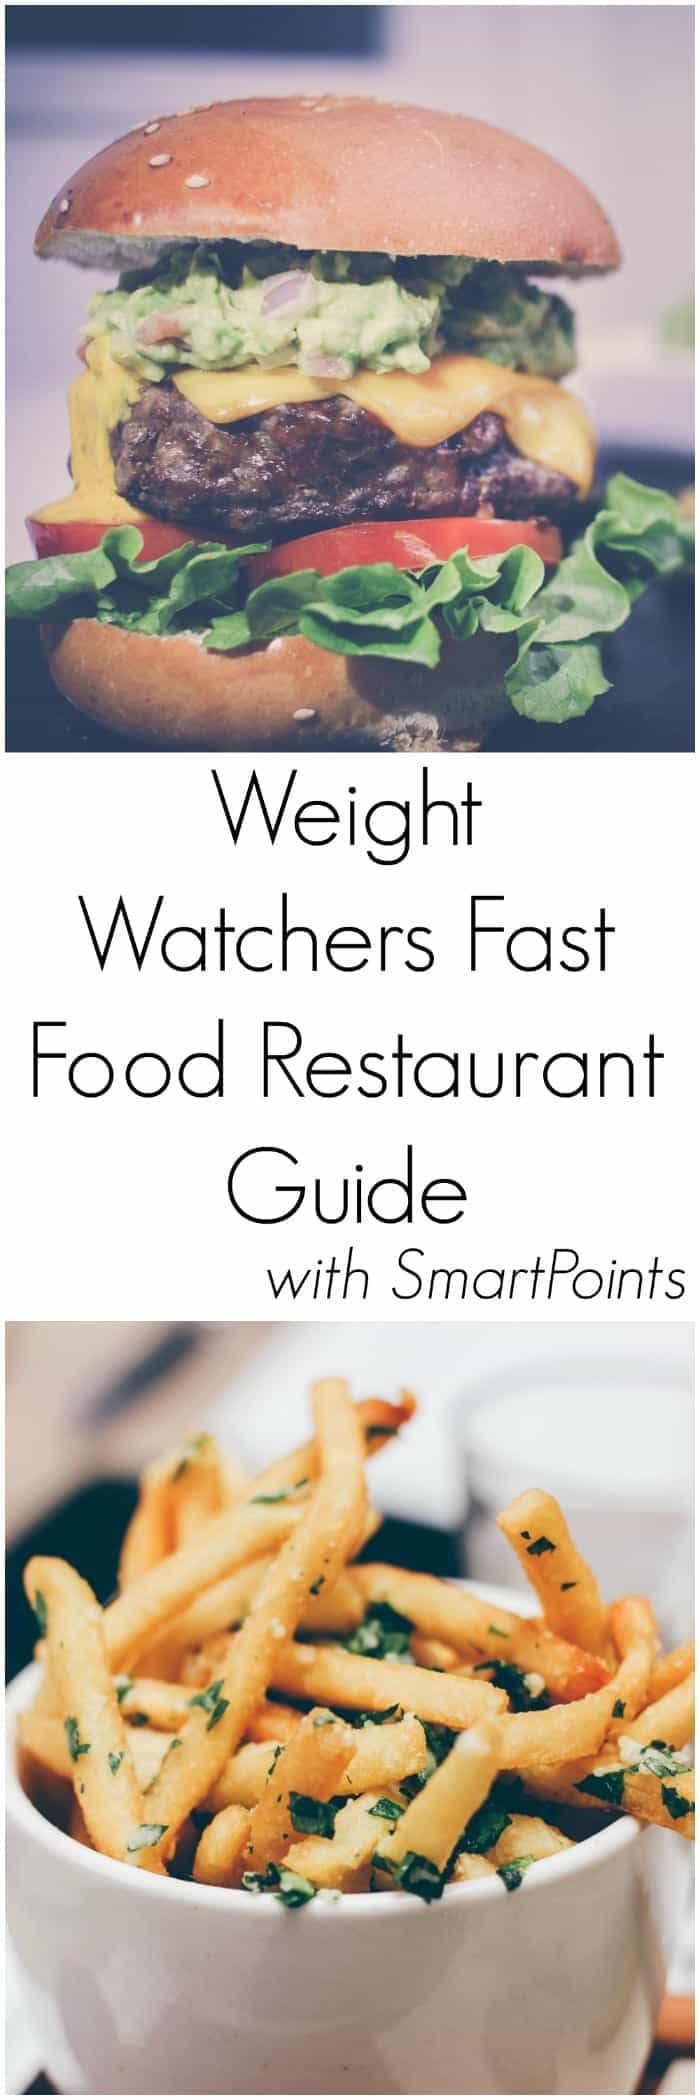 Weight Watchers Fast Food Restaurant Guide with SmartPoints - For those times you are on the go and need to stop for something healthy to eat.